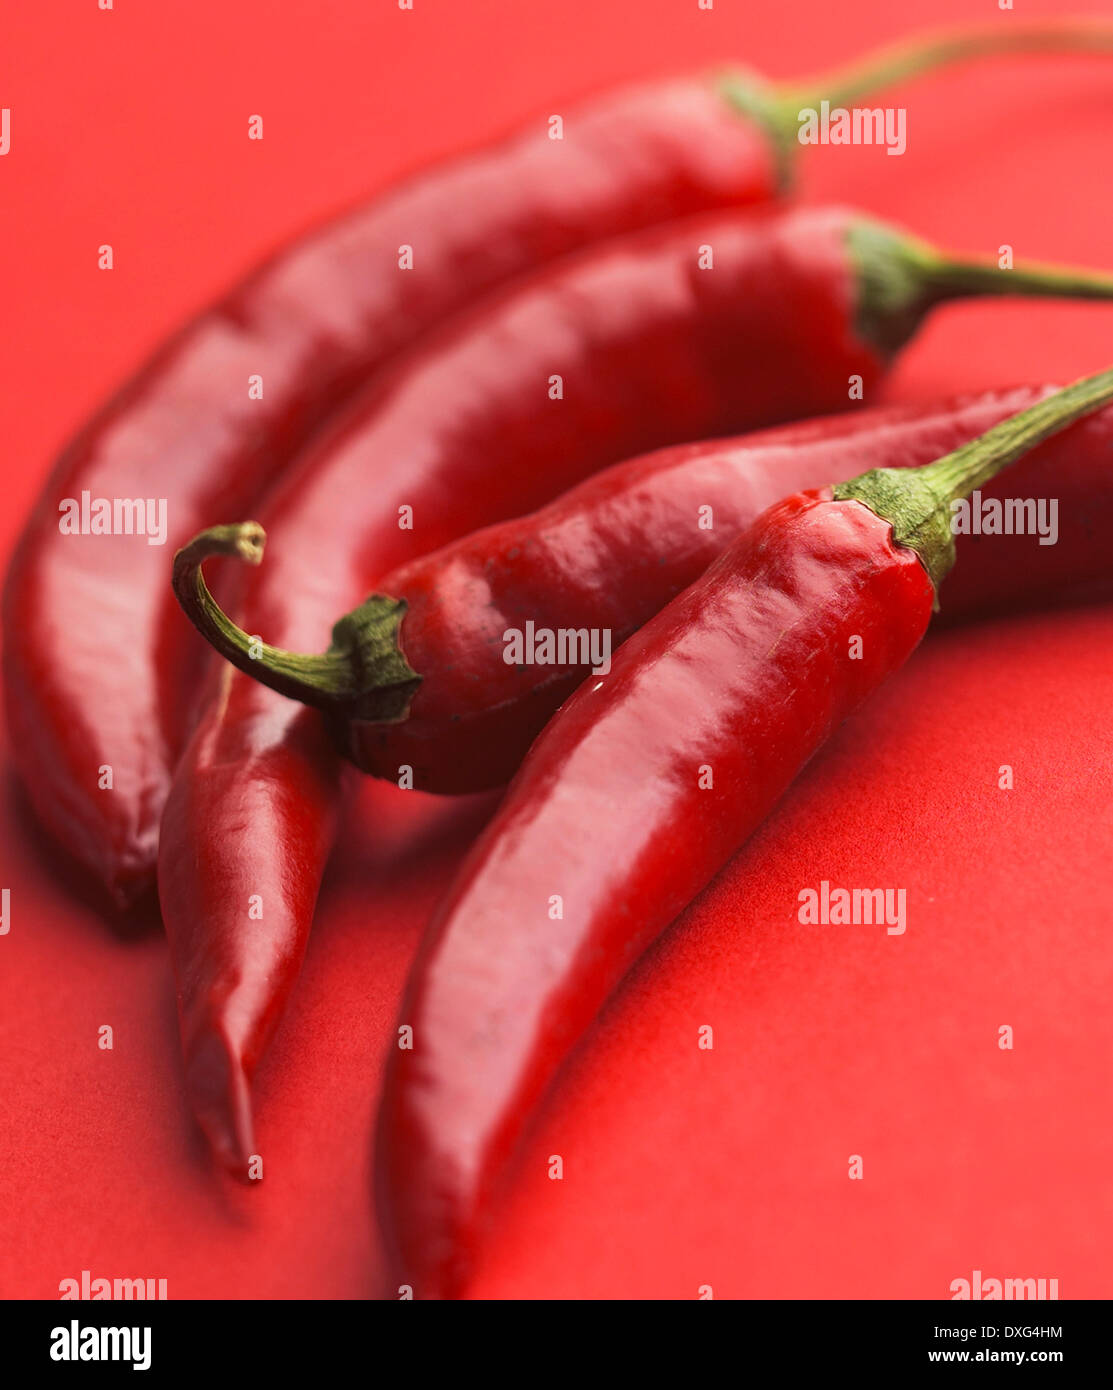 Red Chilli Peppers On Red Background - Stock Image